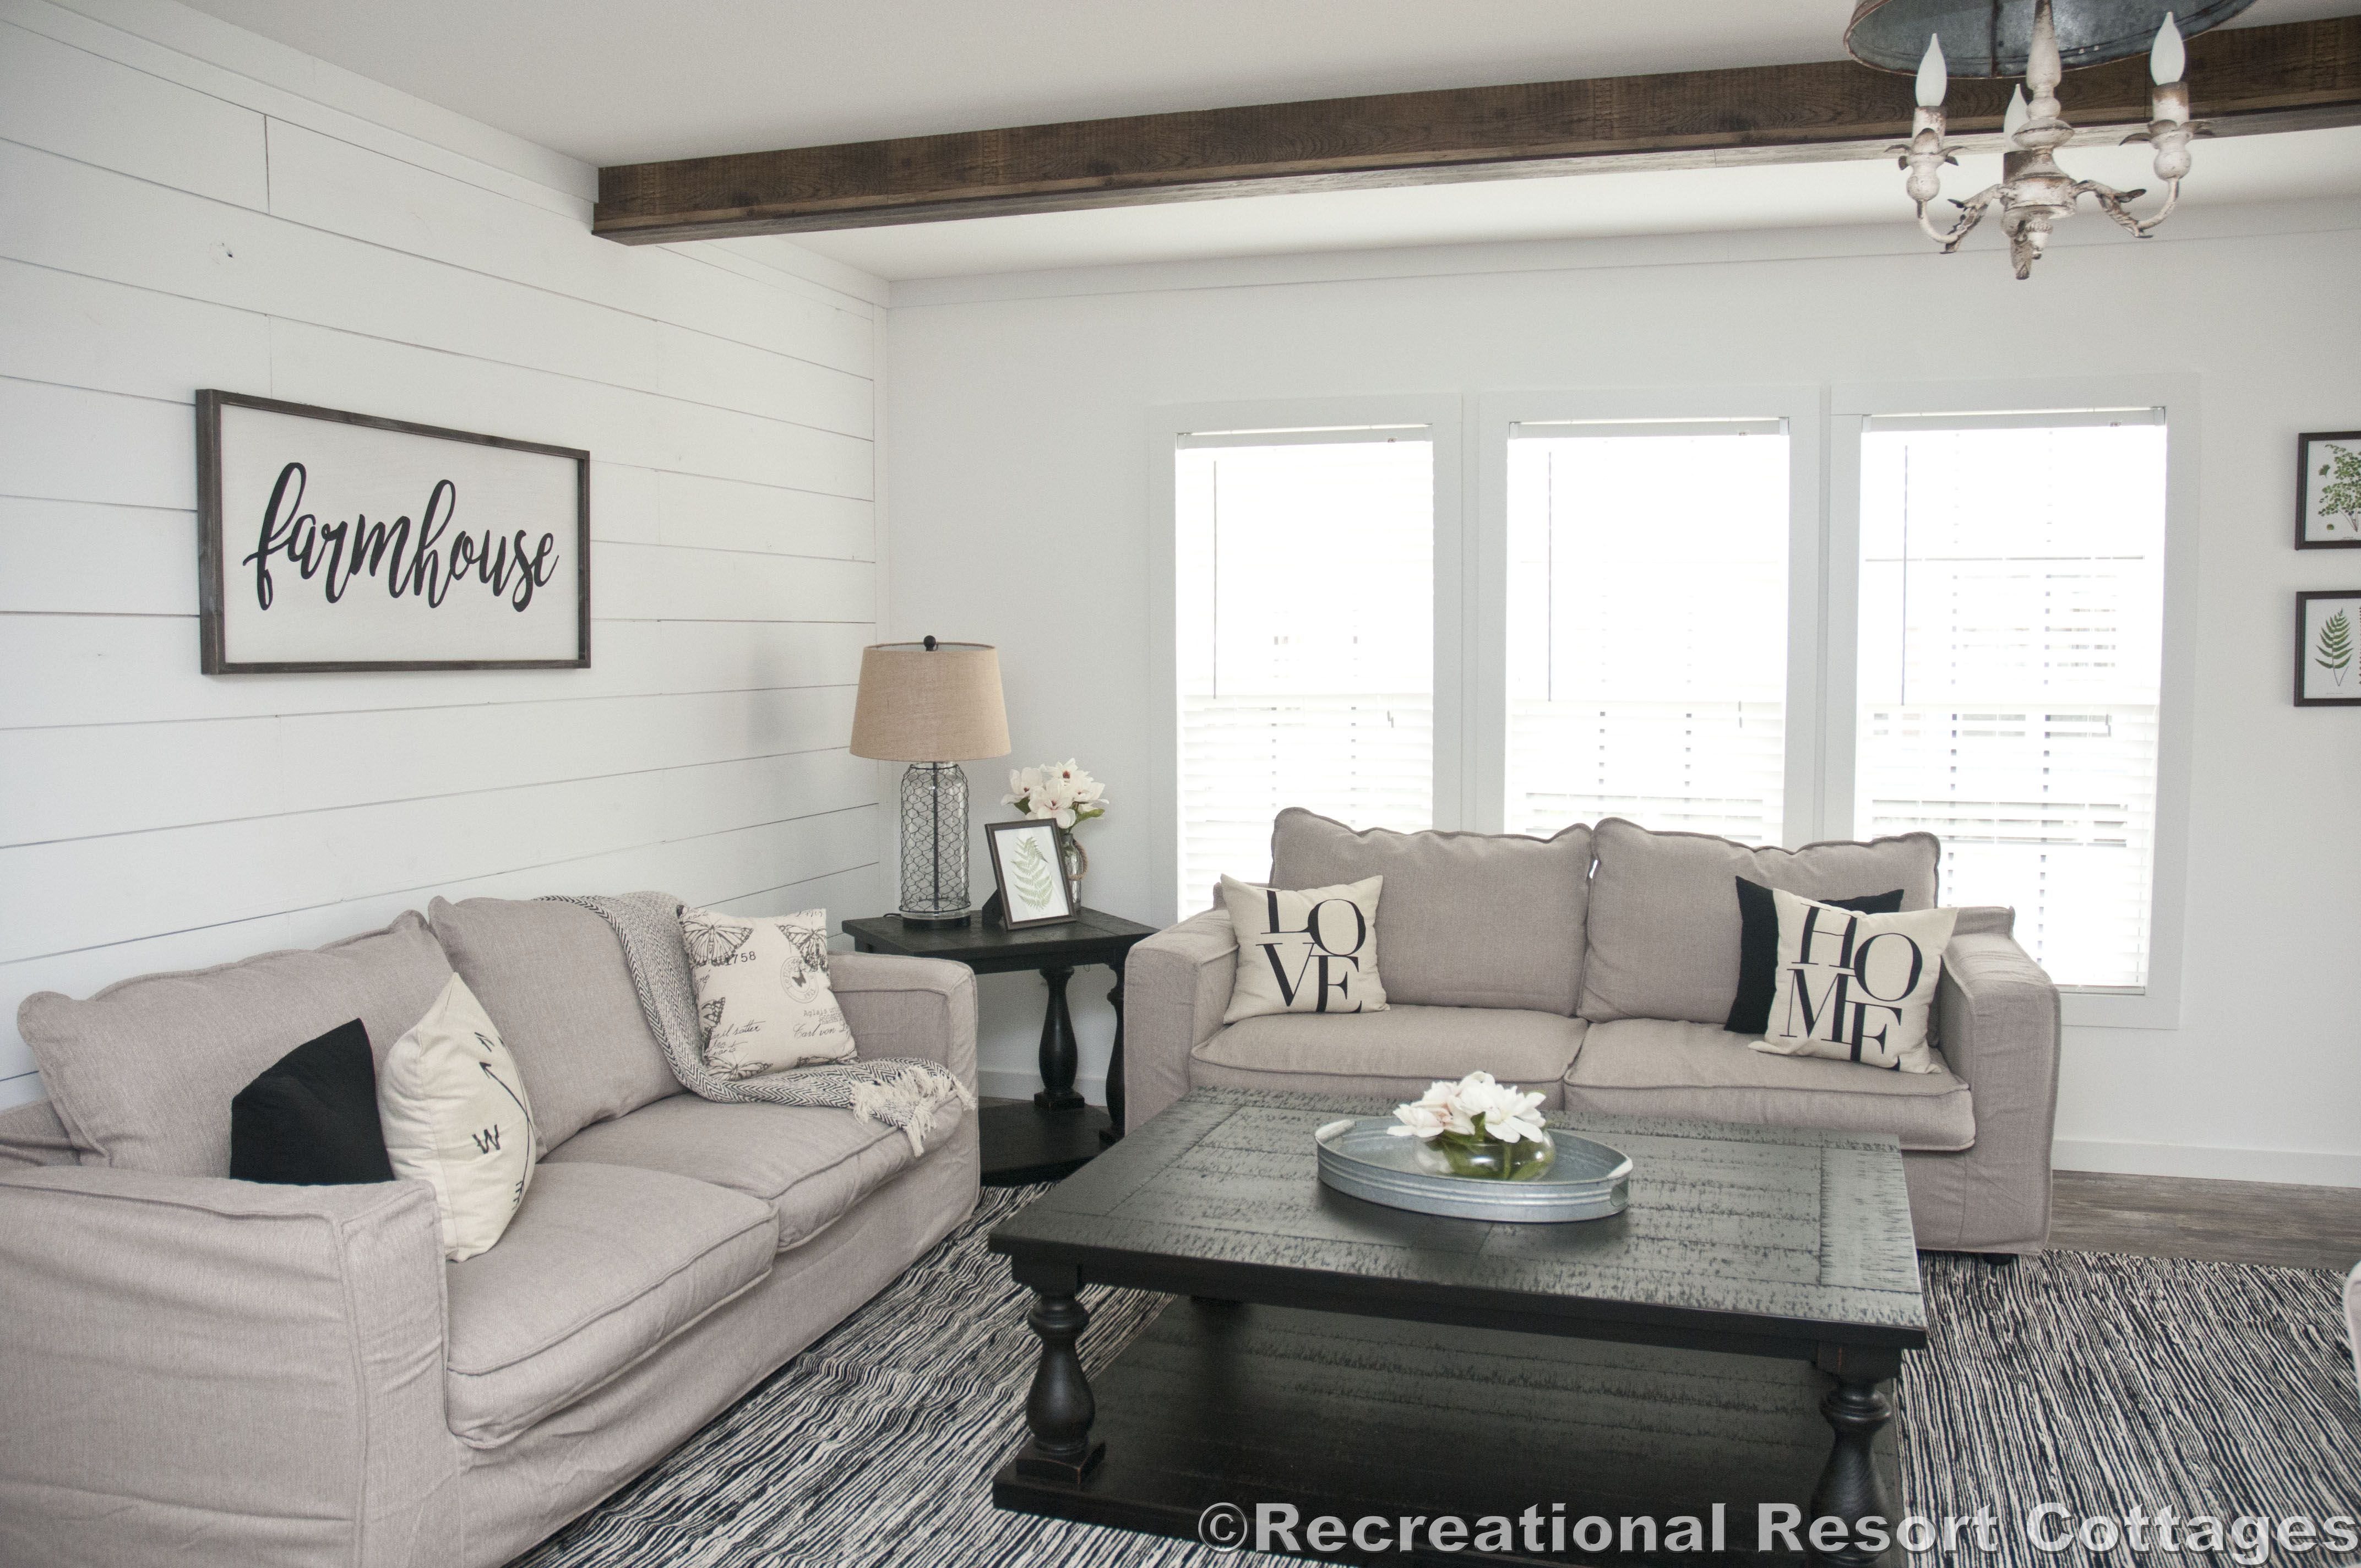 Recreational Resort Cottages, Rockwall, TX | Manufactured ...